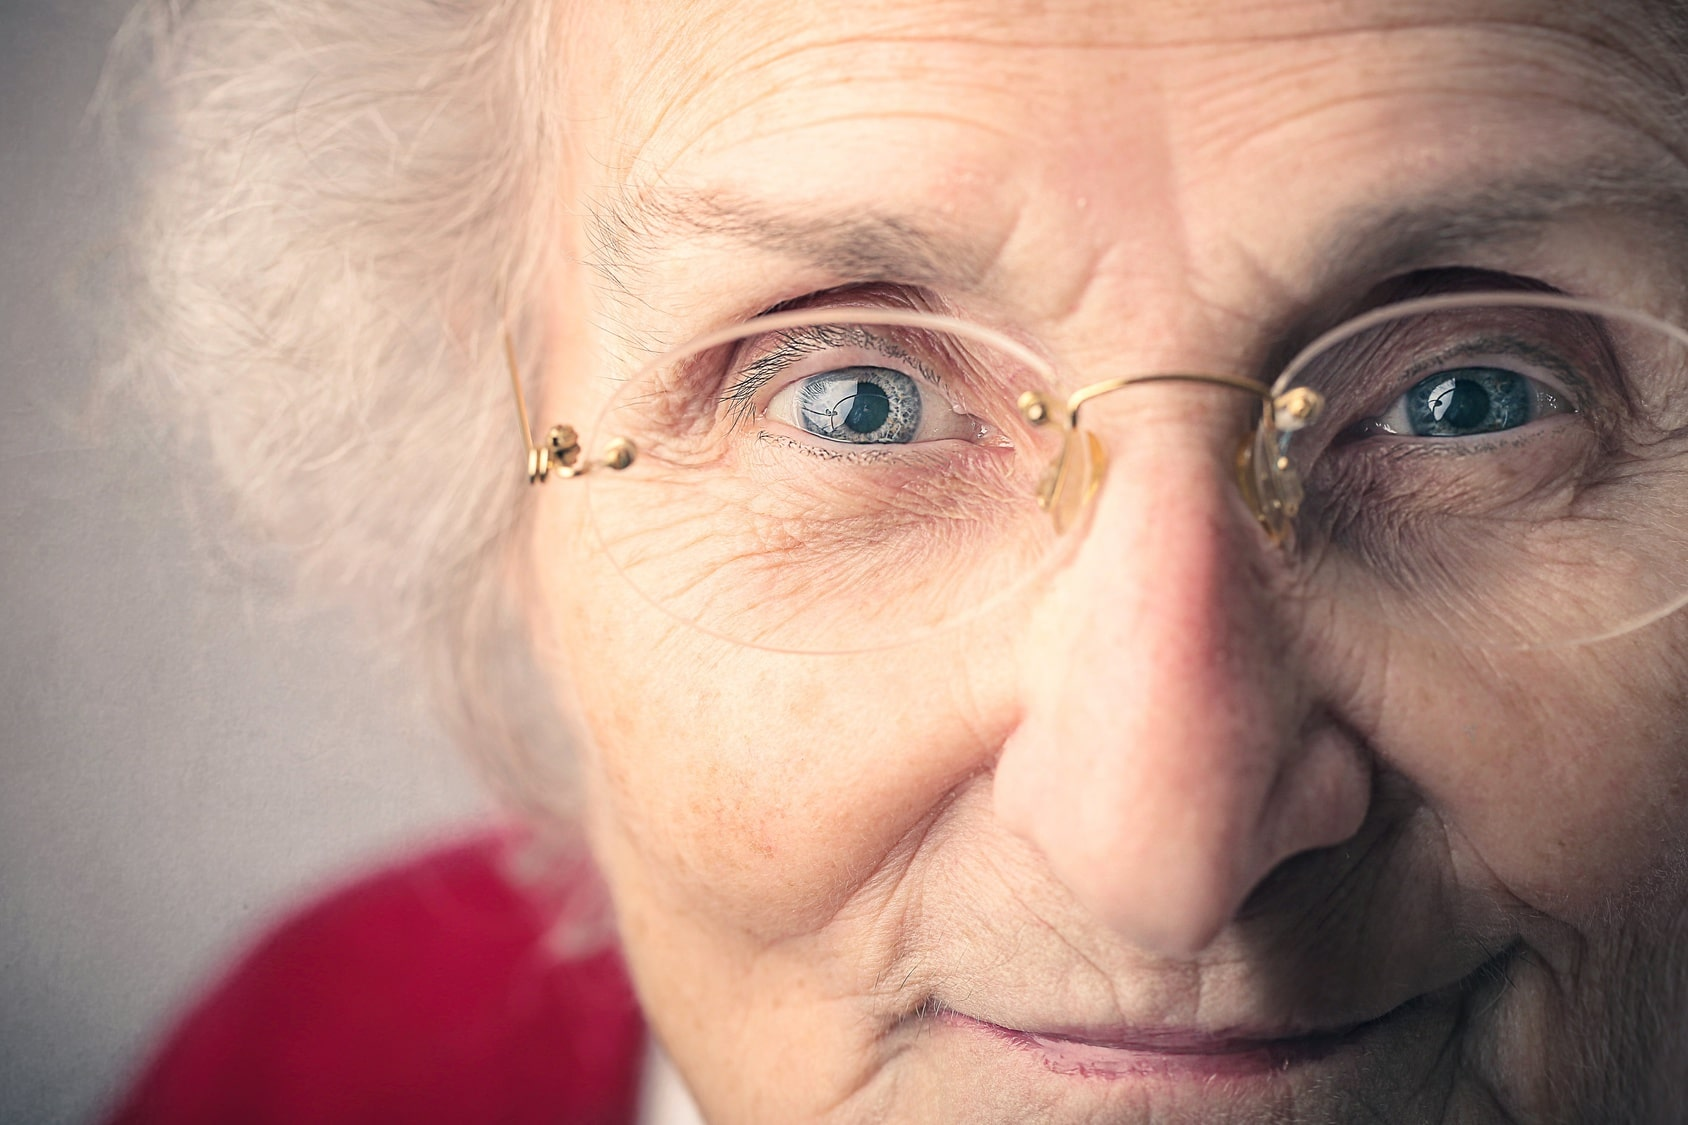 Close up of the face of an older woman with glasses